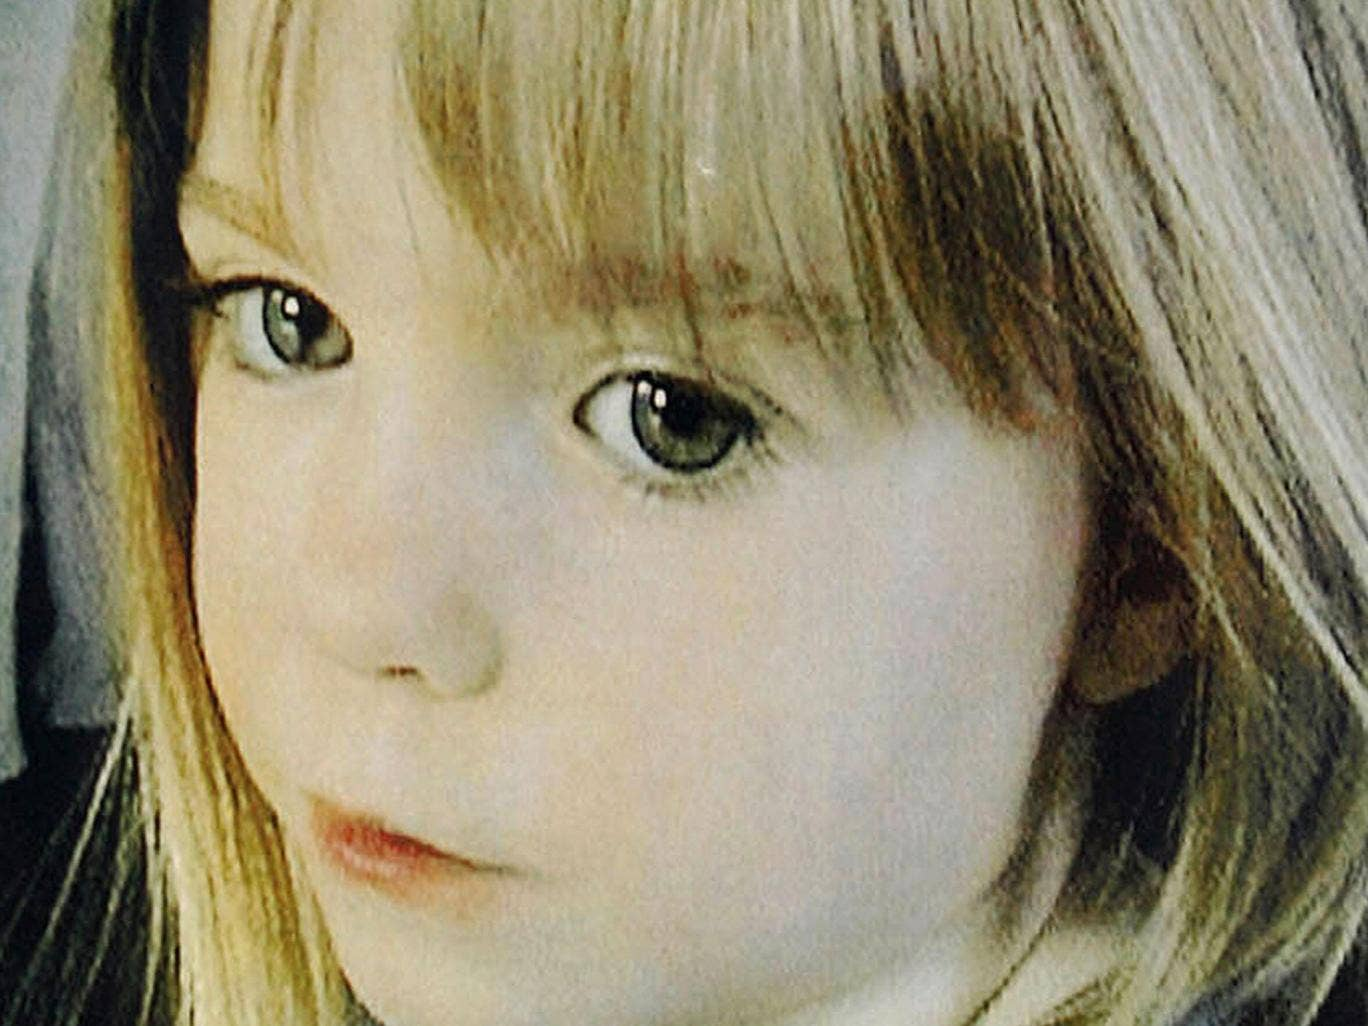 British girl Madeleine McCann, who was allegedy abducted 03 May 2007 from the resort apartment where she was on vacation with her family in the Algarve